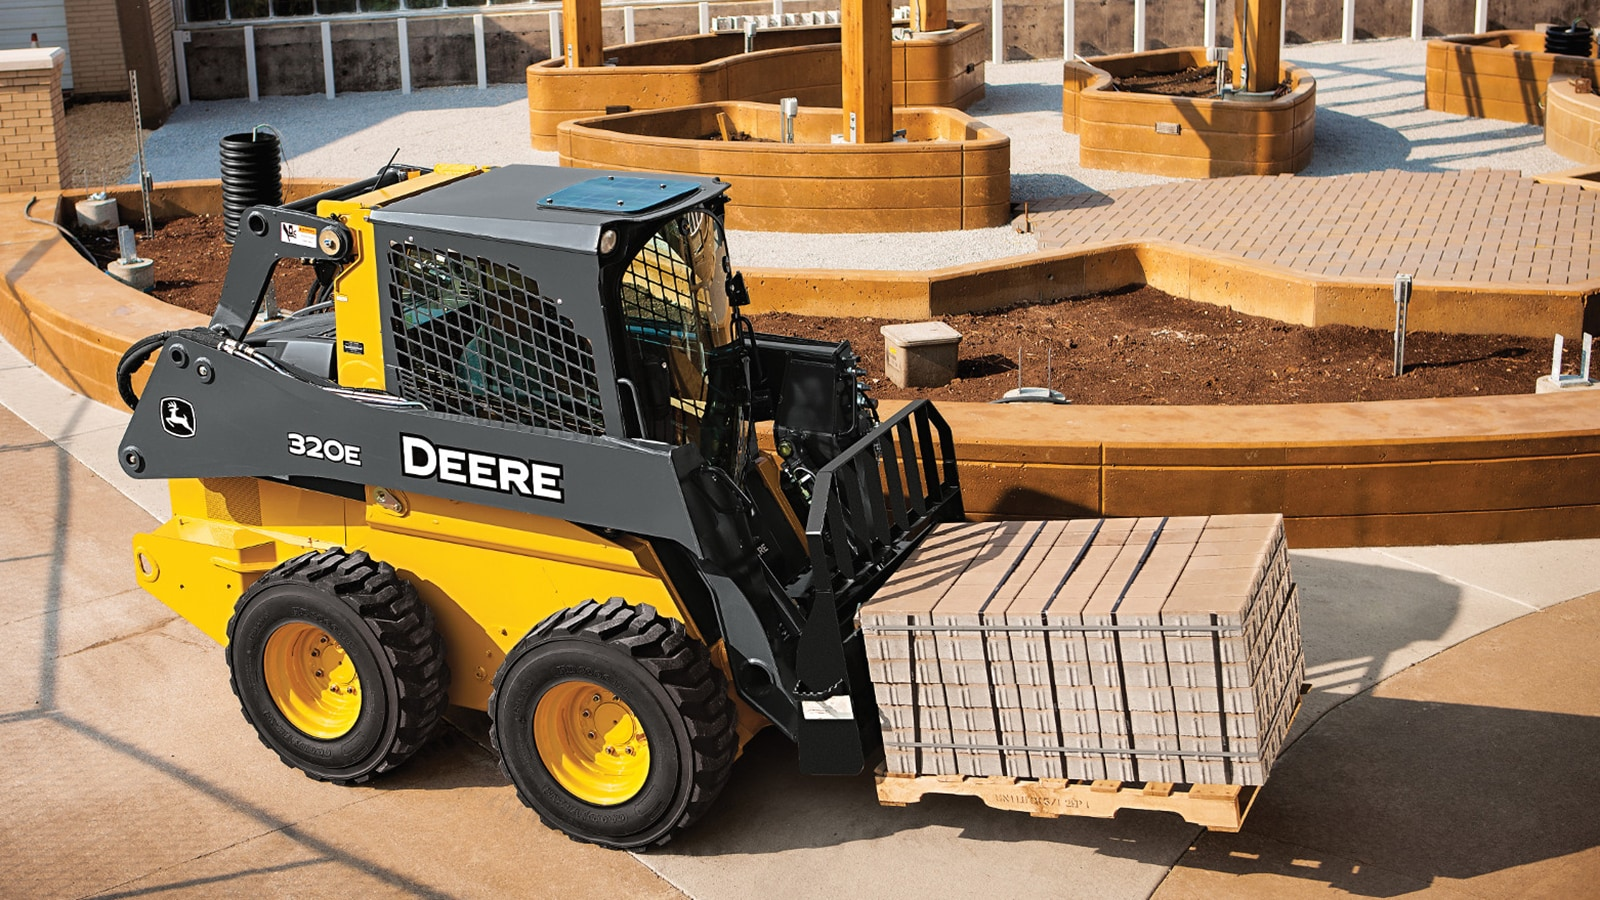 320E Skid Steer with pallet fork attachment carries a load of paving stones